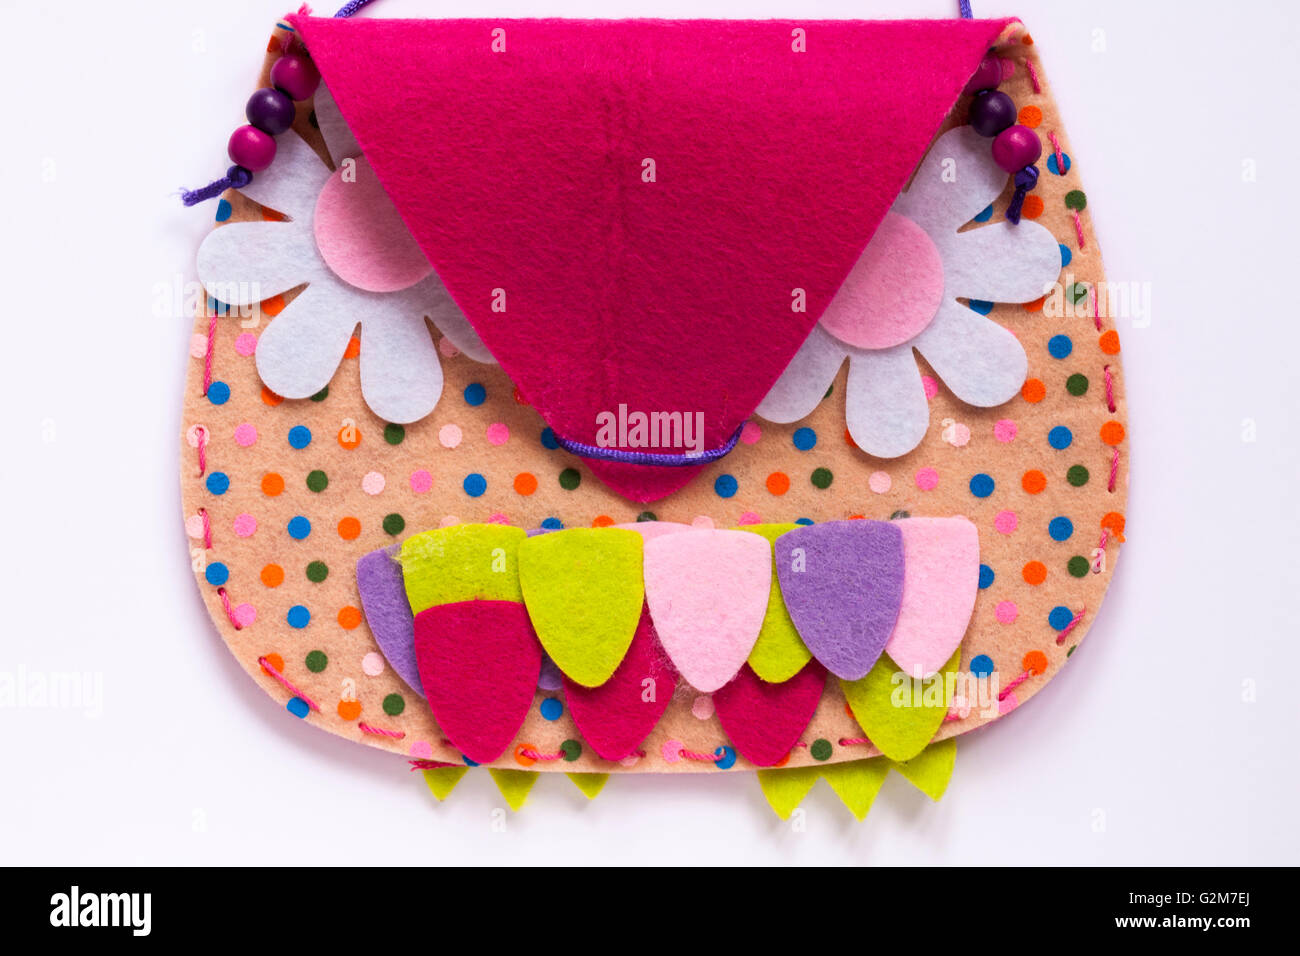 Girl's Pink felt bag with face on it set on white background - Stock Image